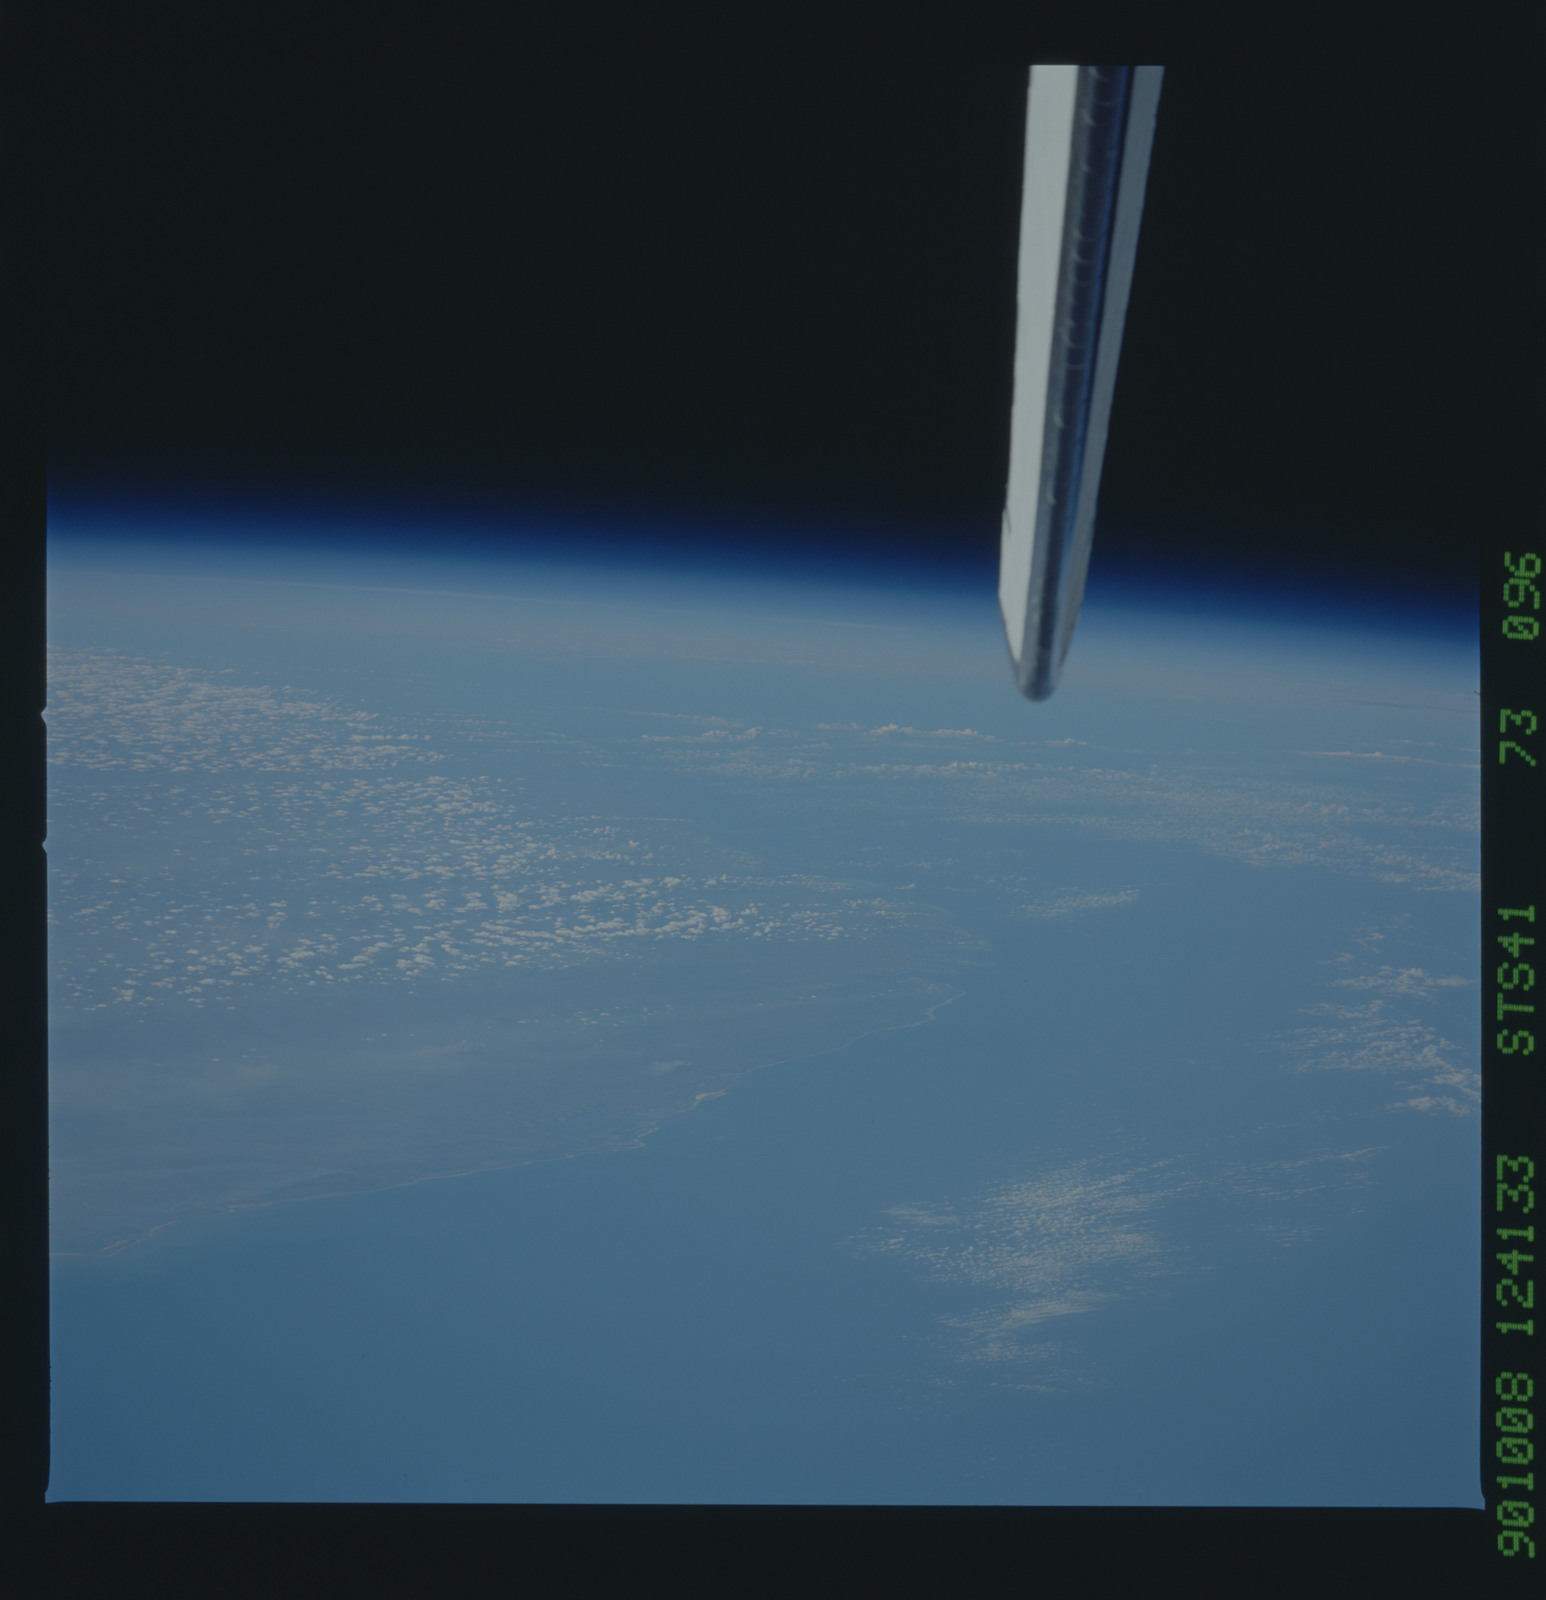 S41-73-096 - STS-041 - STS-41 earth observations